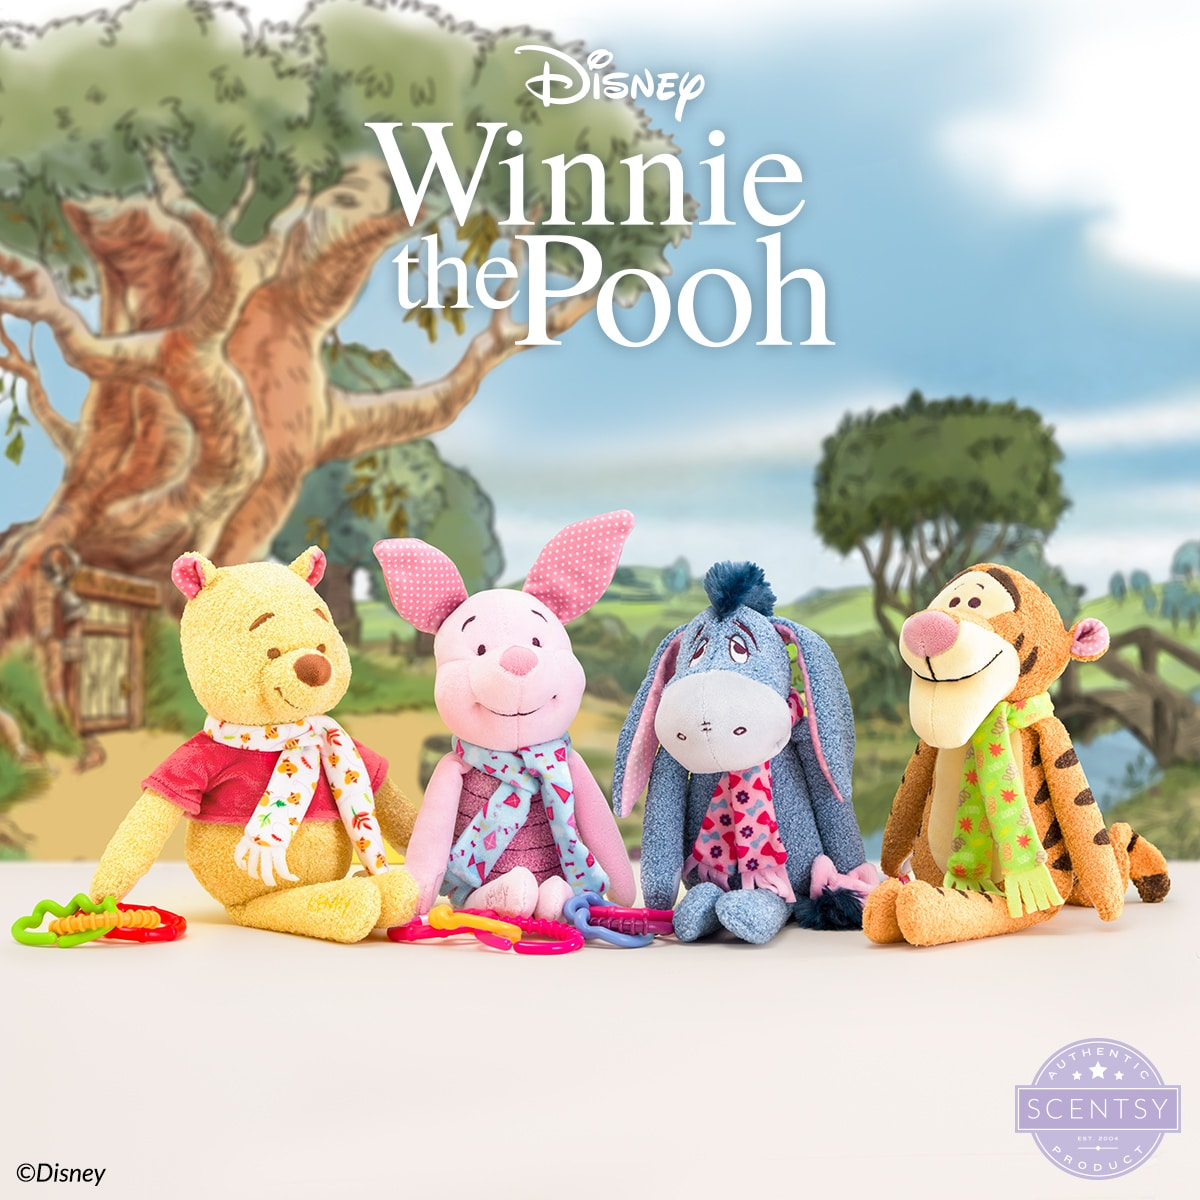 Our Winnie the Pooh – Scentsy Sidekick is the perfect pal for any little one! Shop all four of your favourite Winnie the Pooh characters in The Disney Collection starting Sept. 1.